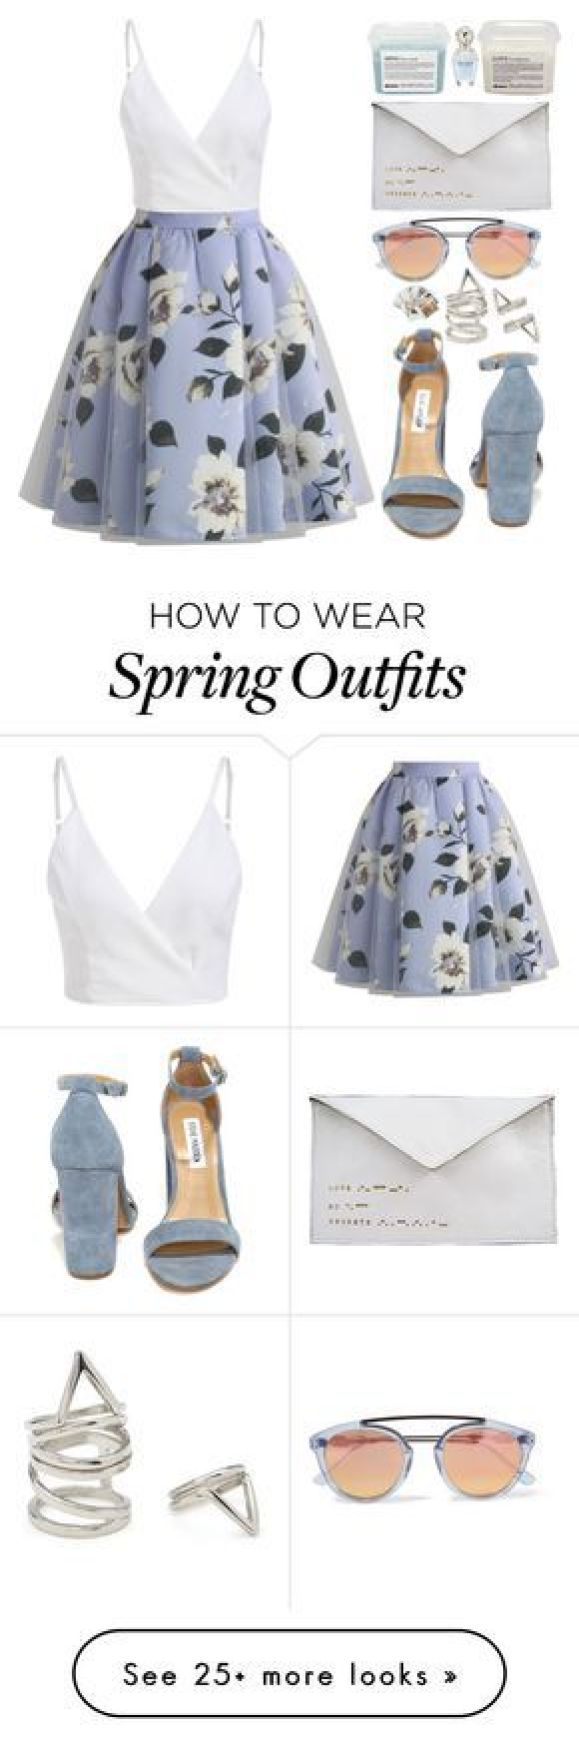 teen outfits 19 sizzling magazine - 15+ Cute Outfit Ideas for Teen Girls 2018 – Teenage outfits for School